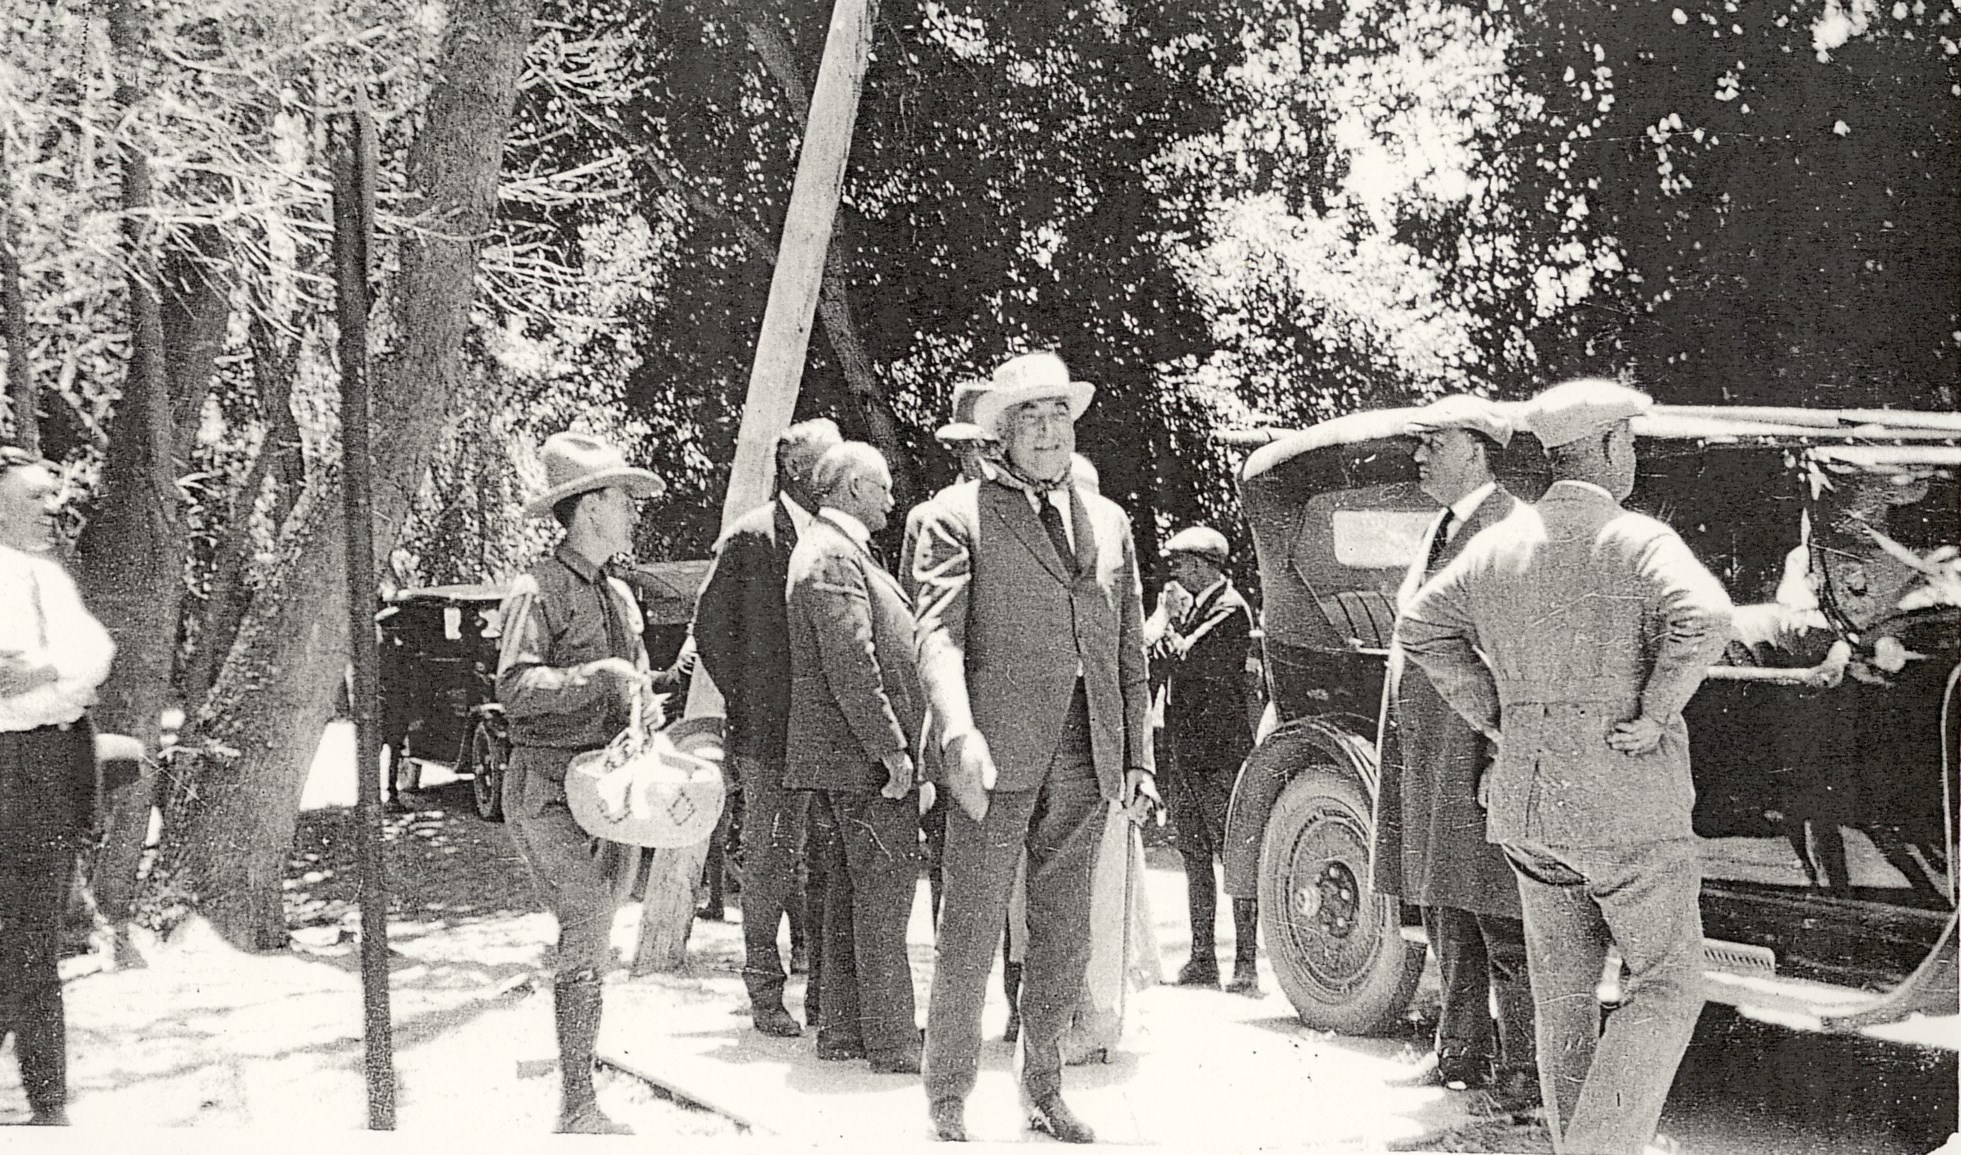 President Harding and his entourage arriving in Zion National Park